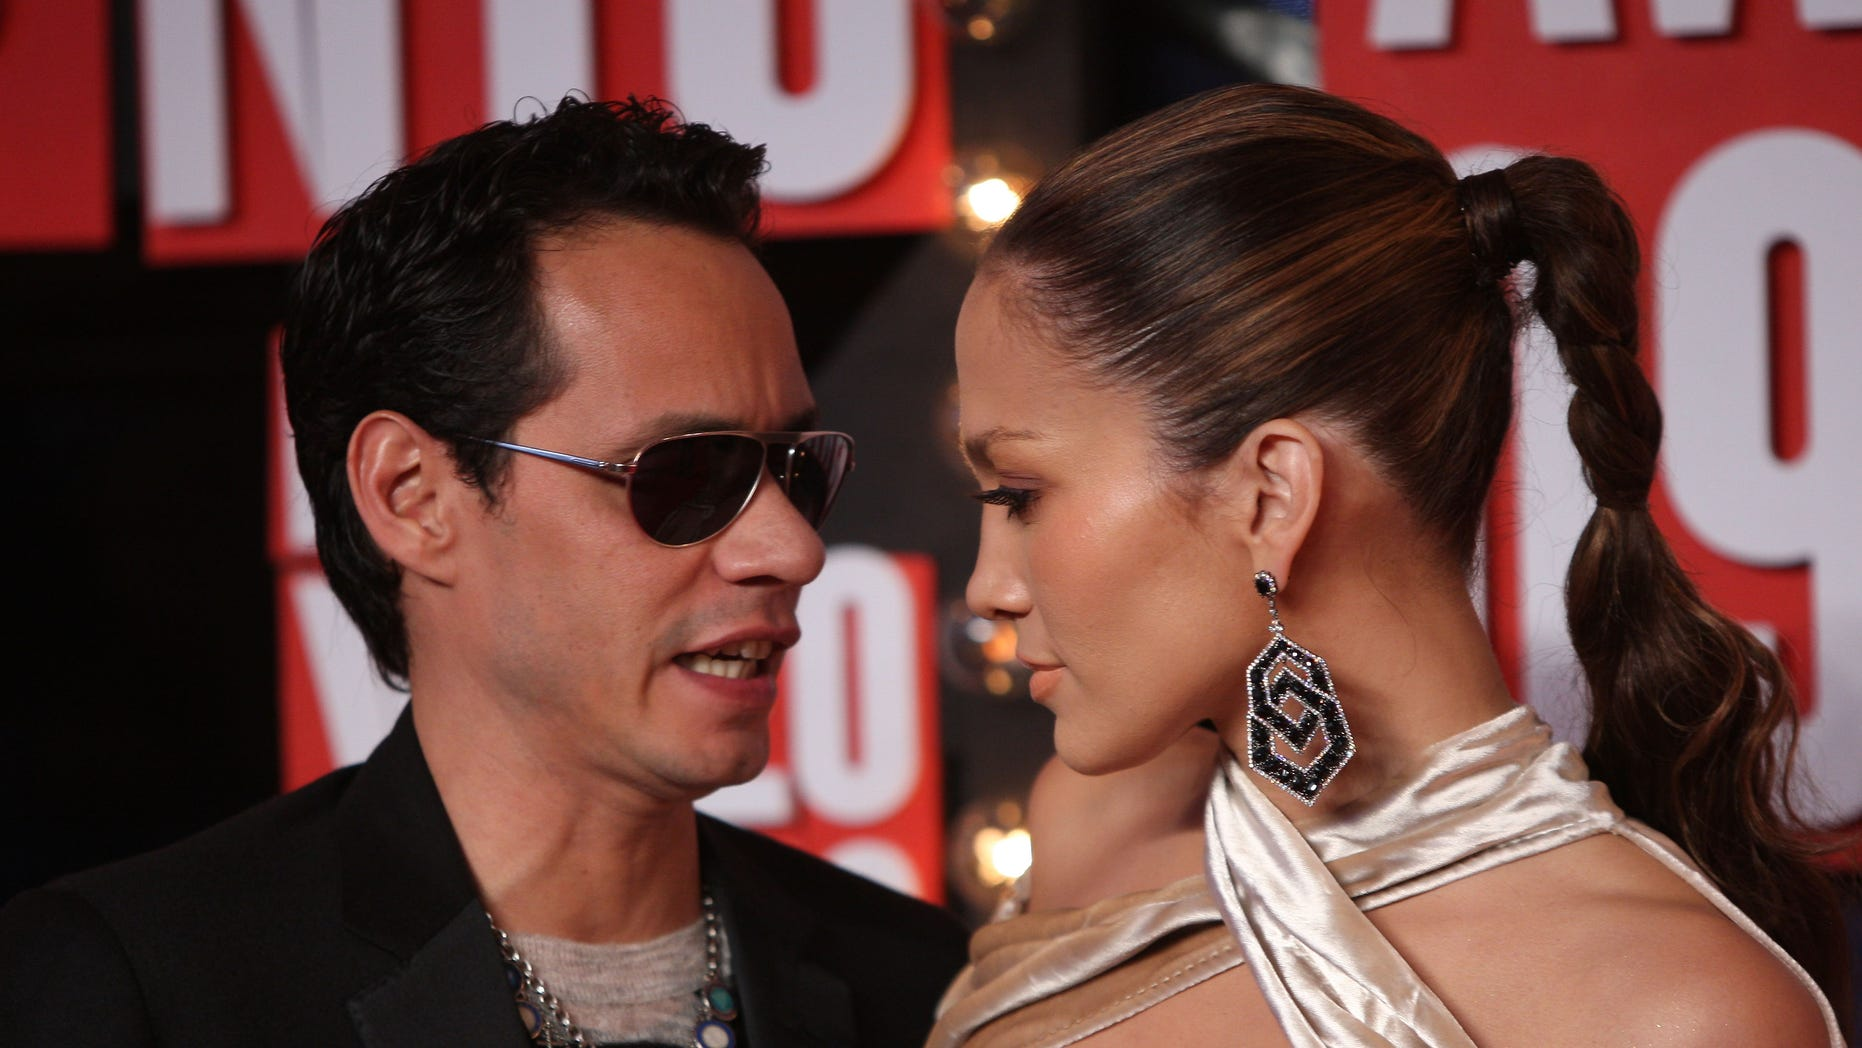 Sept. 13, 2009:  Marc Anthony  and Jennifer Lopez arrive at the 2009 MTV Video Music Awards at Radio City Music Hall  in New York City.